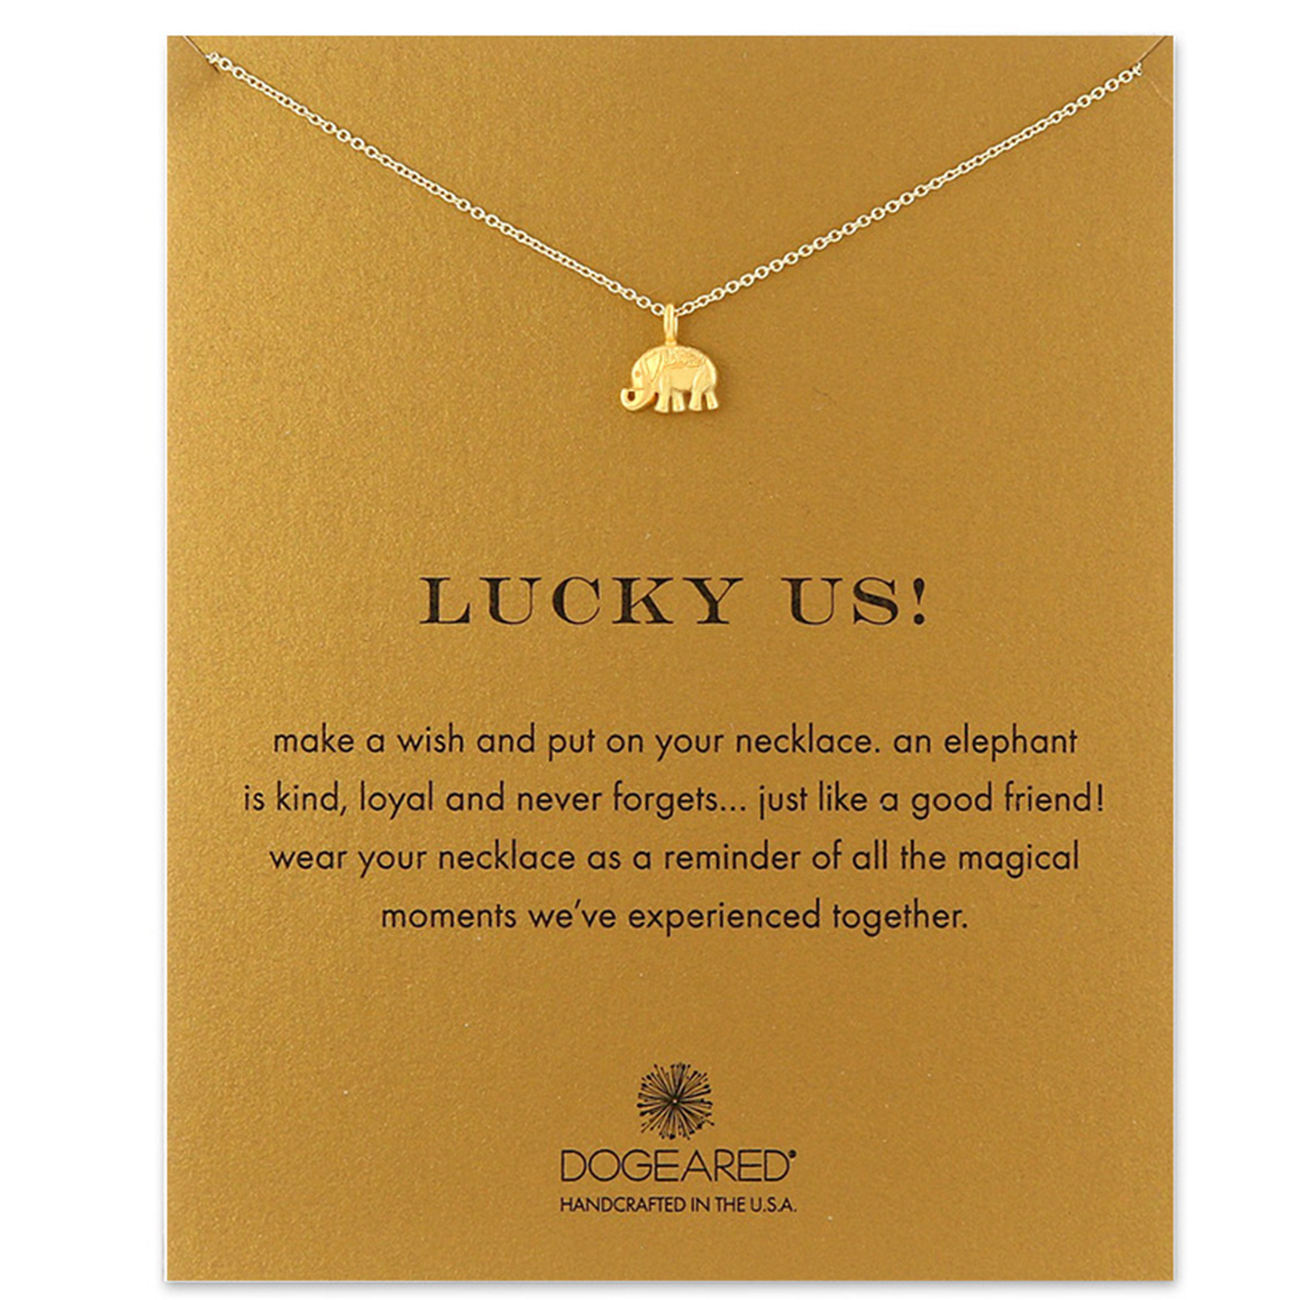 Wholesale most popular lucky necklace best wishes gold plated jewelry pendant collarbone chain necklaces with message gift card